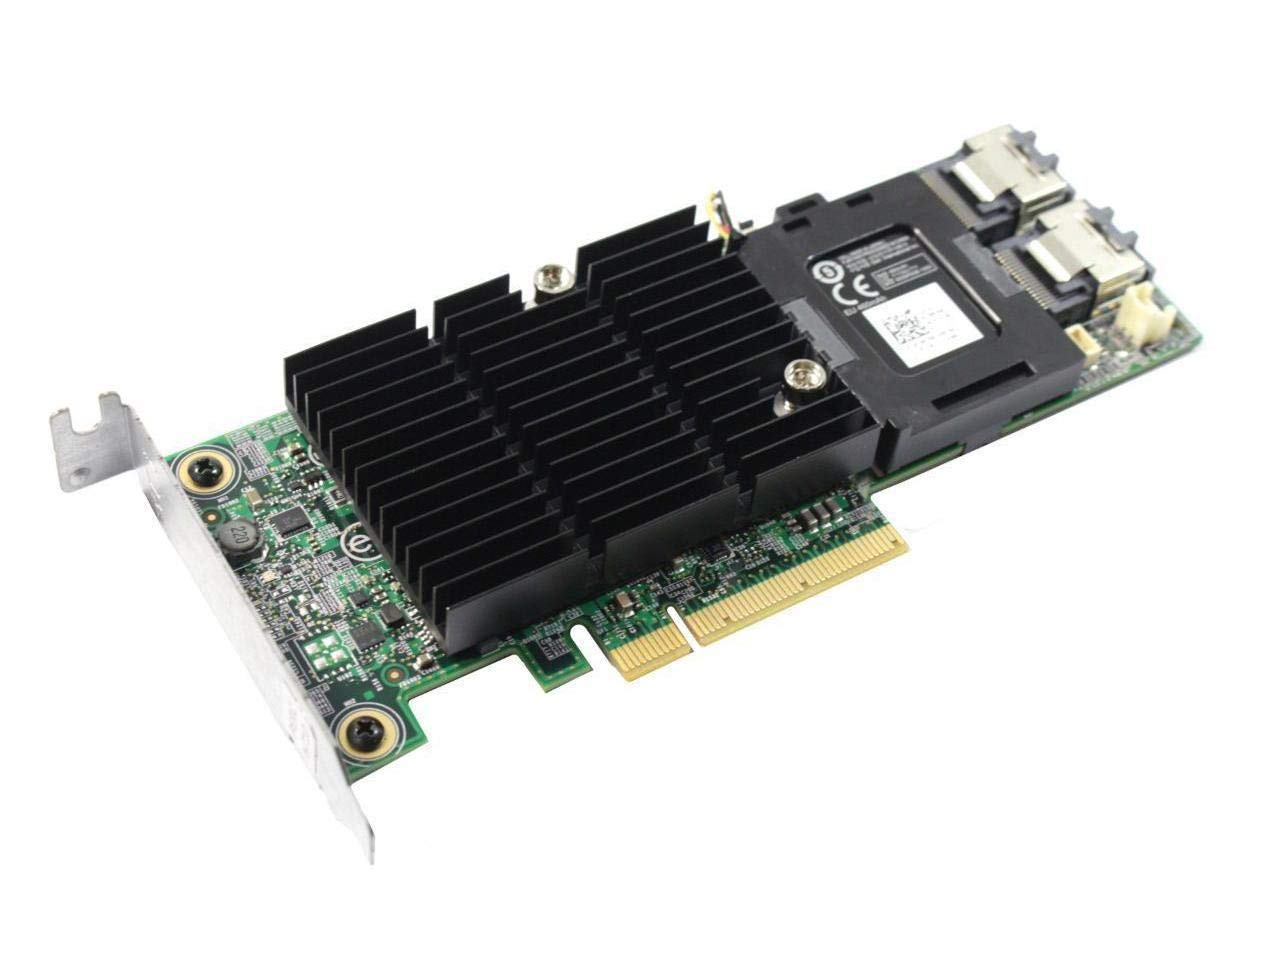 DELL VM02C PERC H710 PCIe RAID CARD, 512MB NV CACHE FULL HT by Dell (Image #8)